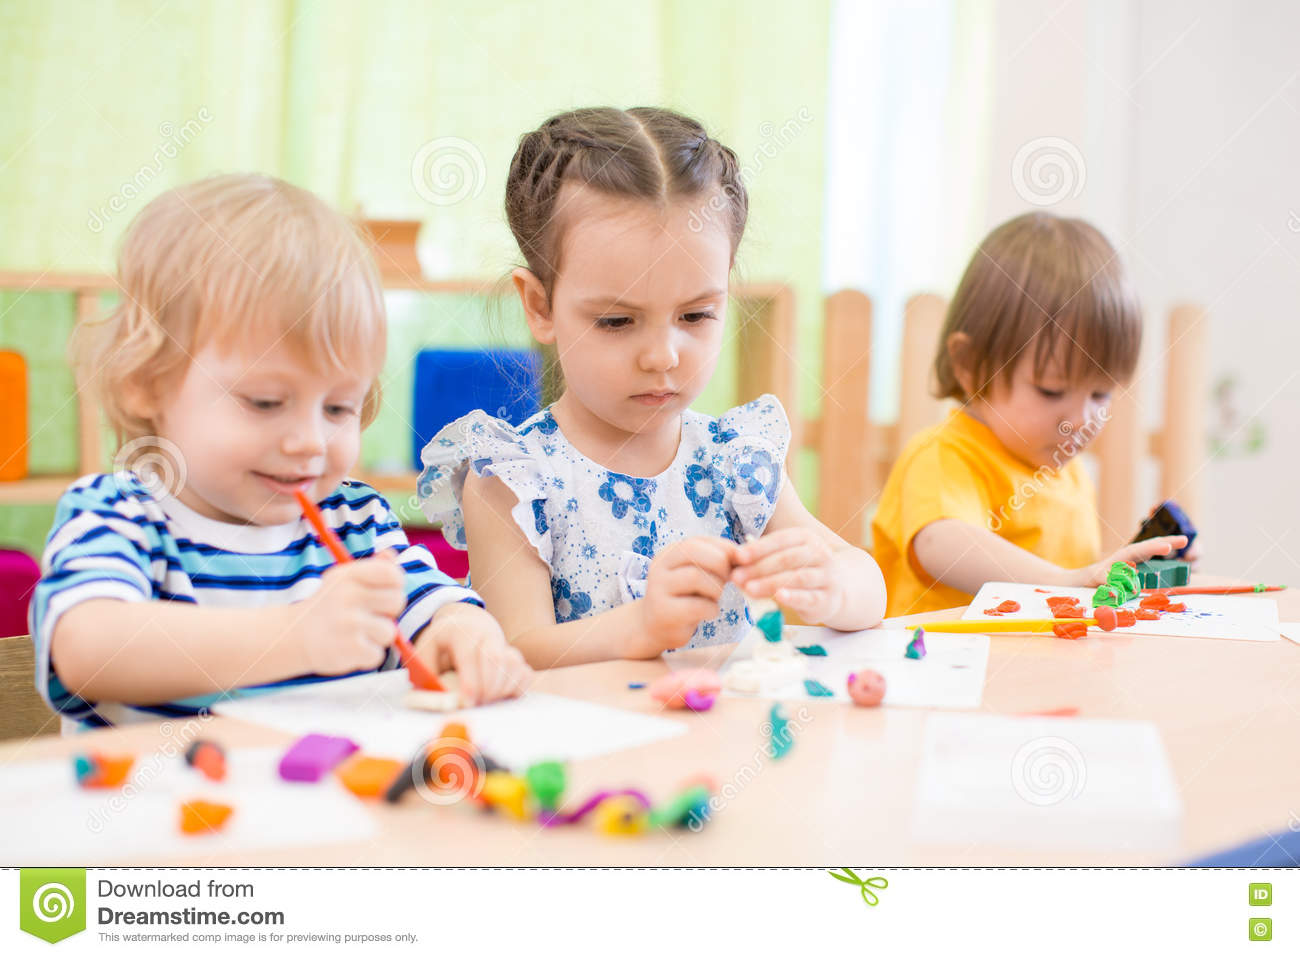 Children Doing Arts And Crafts Stock Image Image Of Happiness